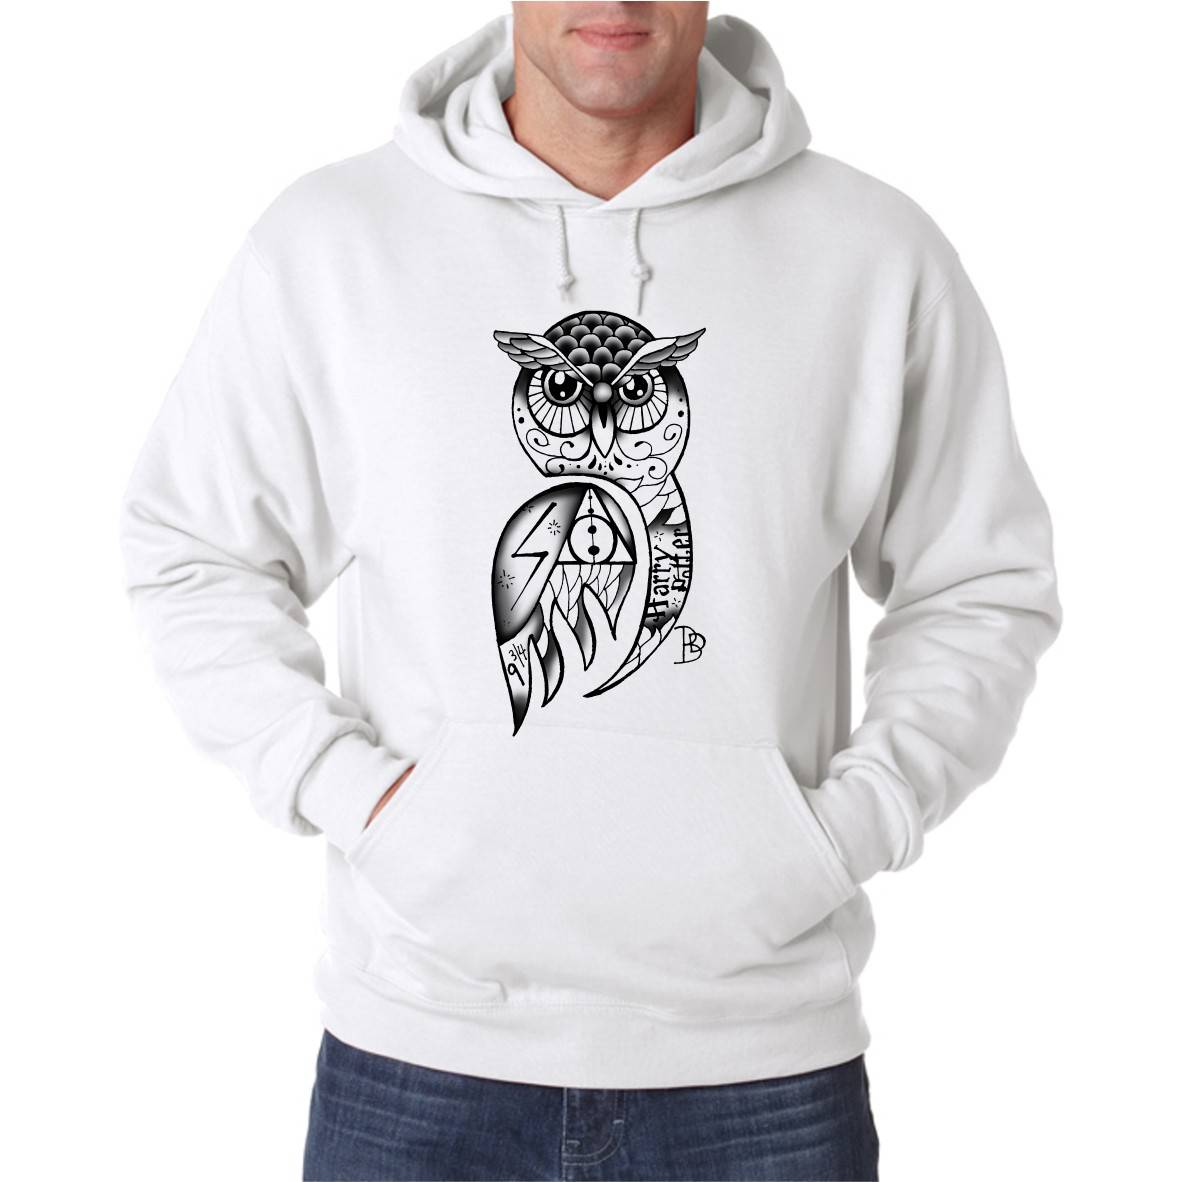 EDVIGE UNISEX HOODED